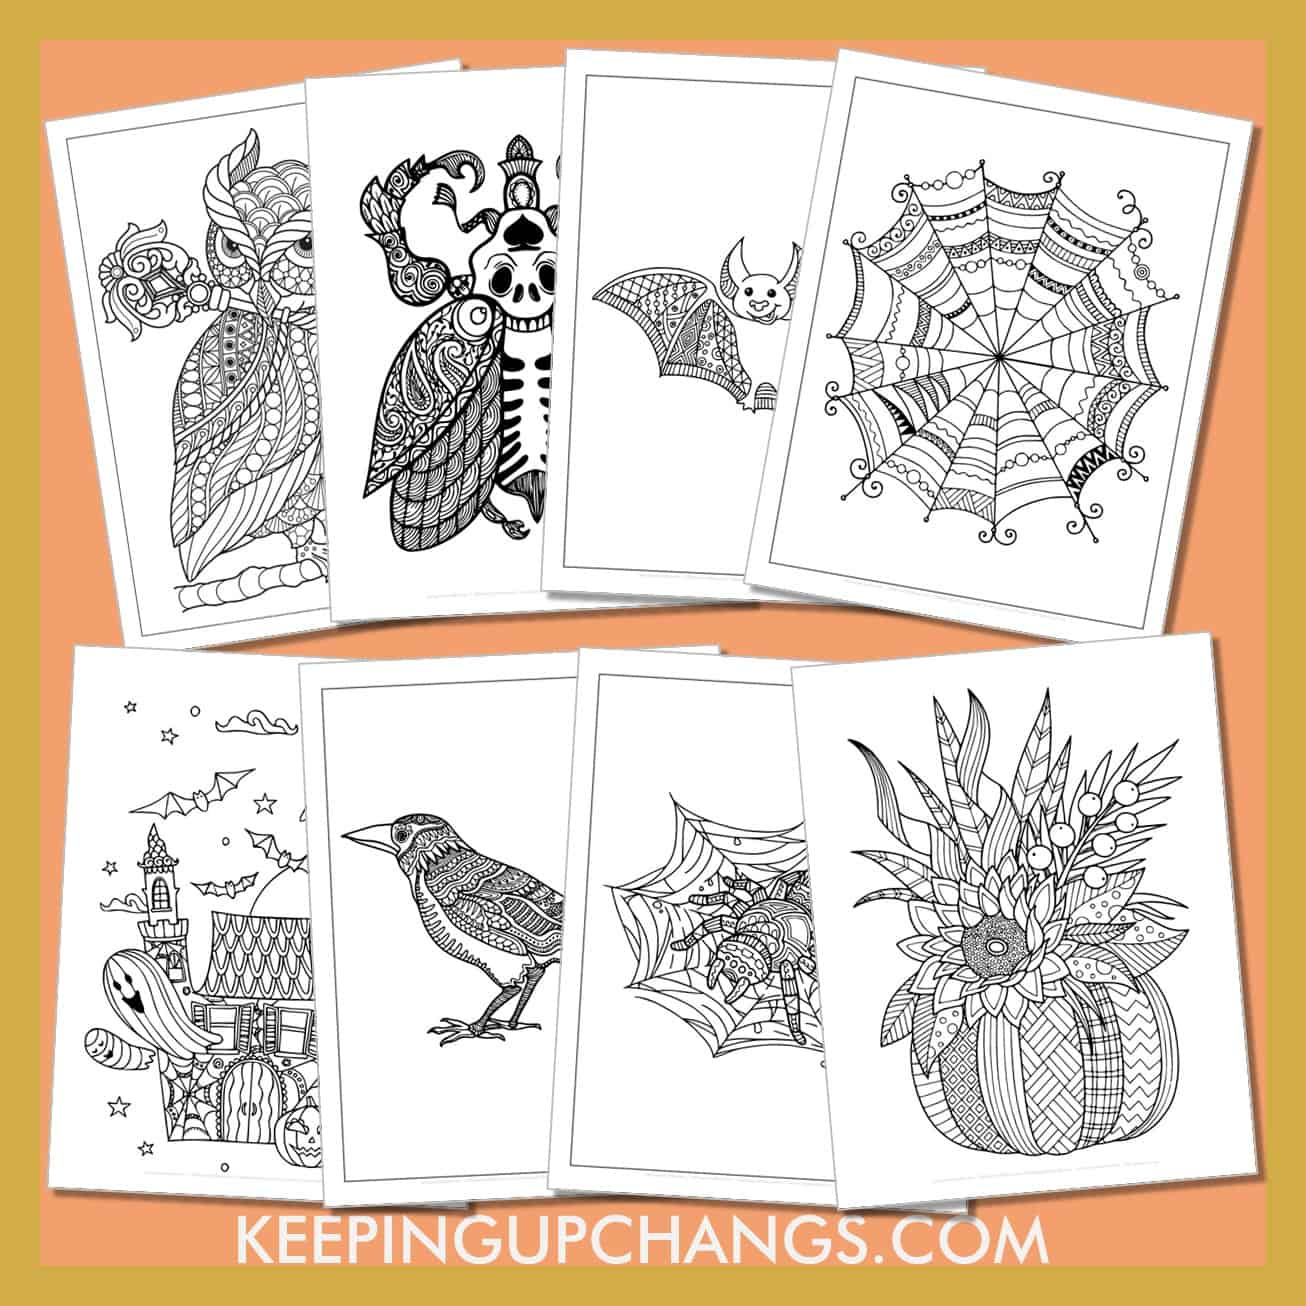 adult halloween colouring sheets including zentangle pumpkin, haunted house.